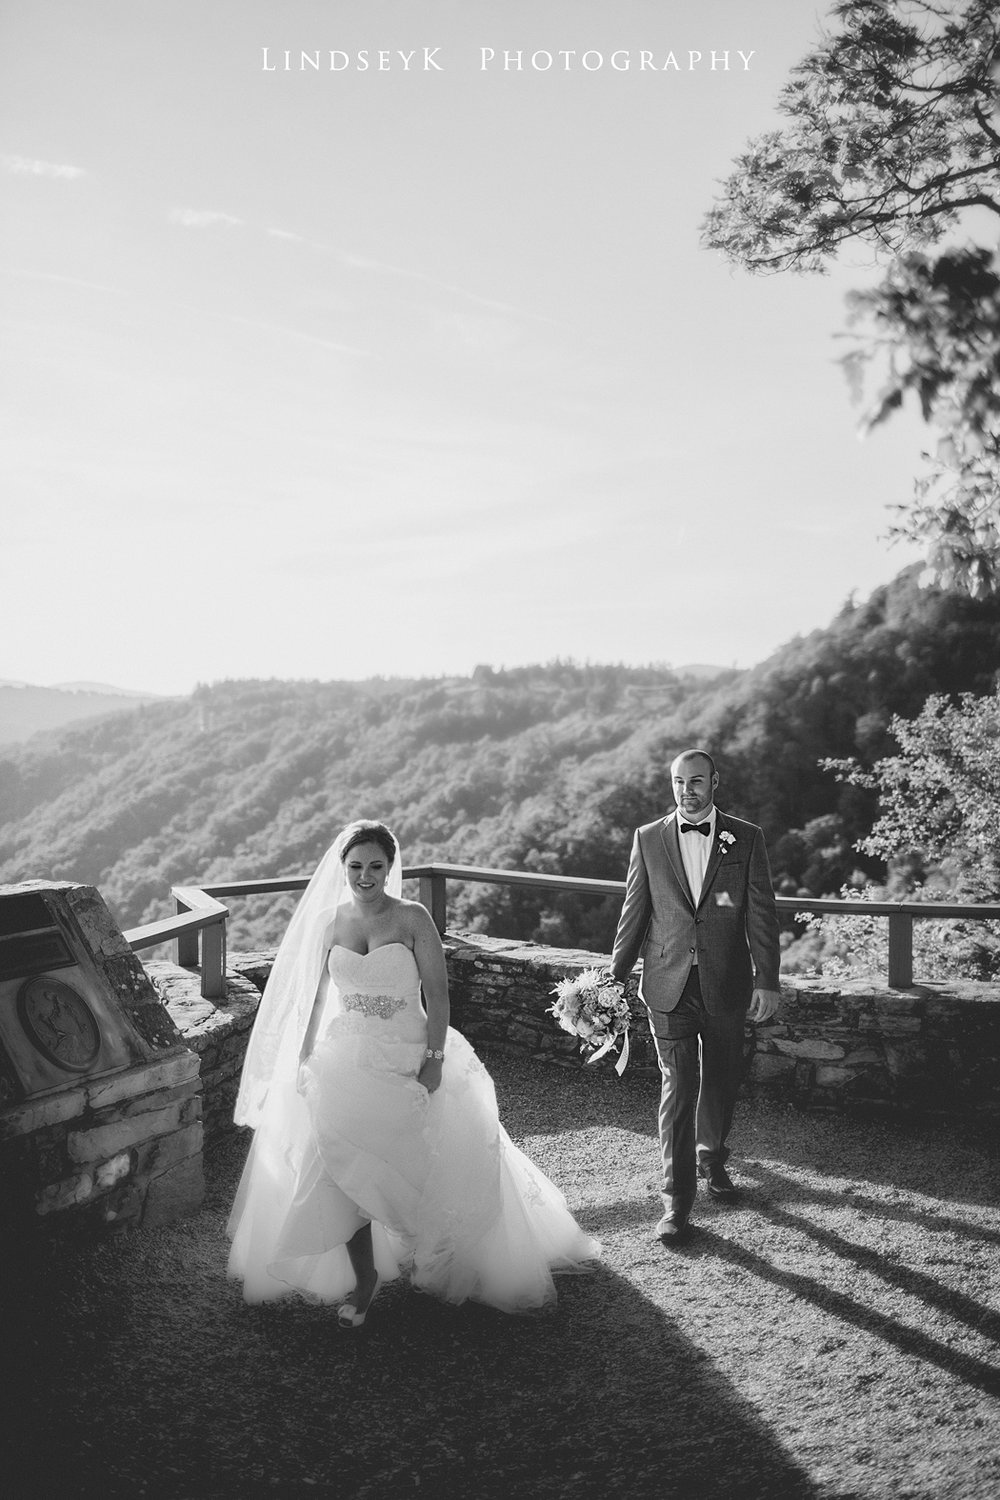 bw-film-wedding-photo.jpg